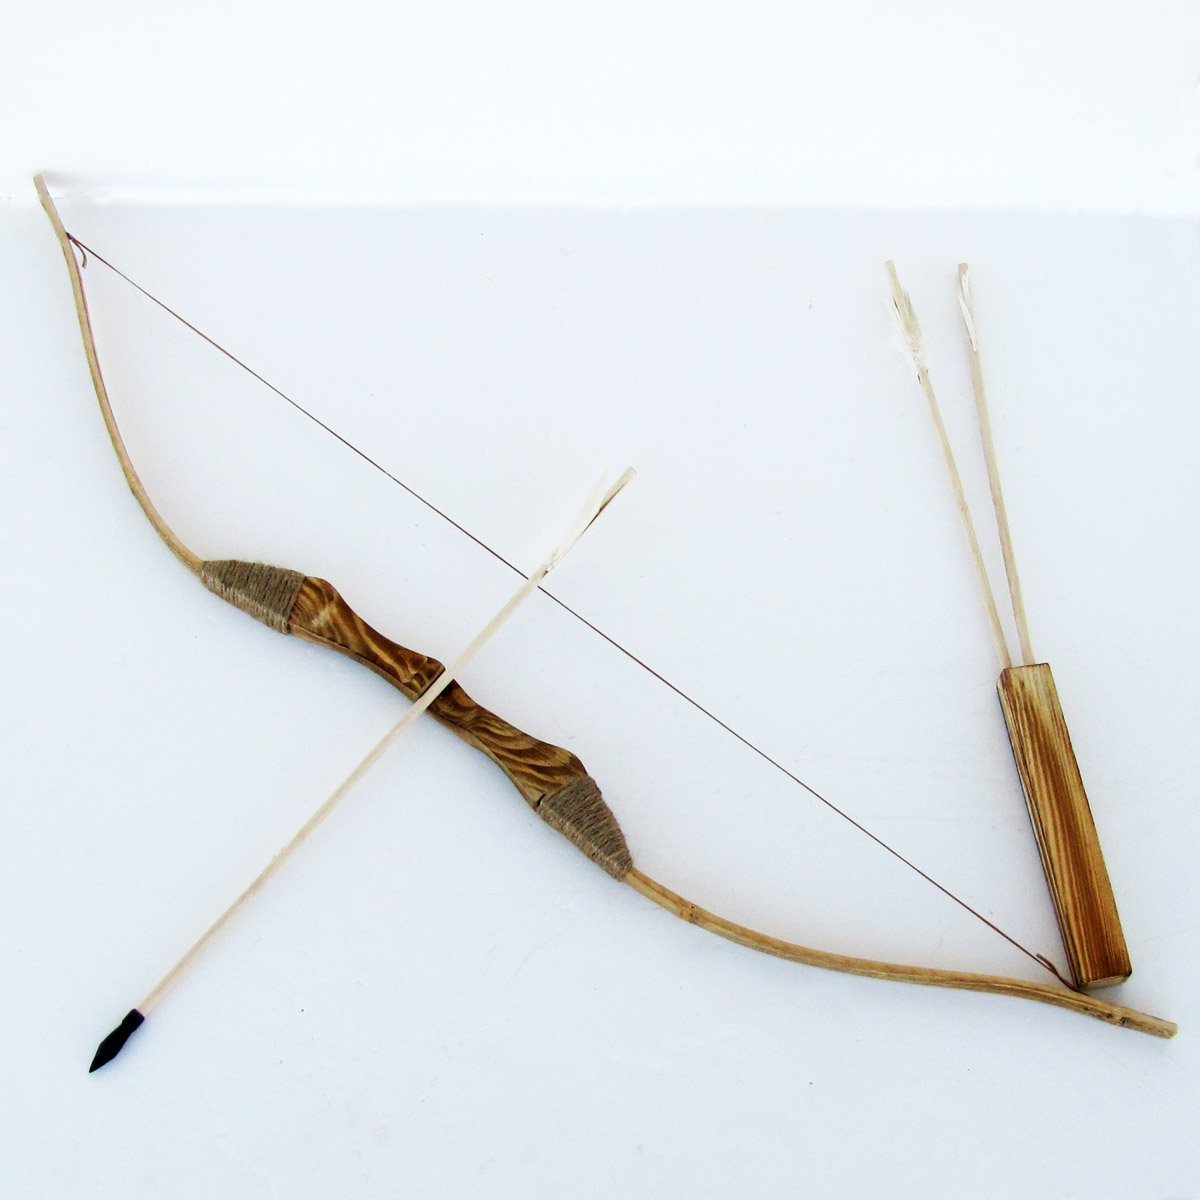 Youth Wooden Bow and Arrows with Quiver and Set of 3 Arrows by WOODEN SHOP